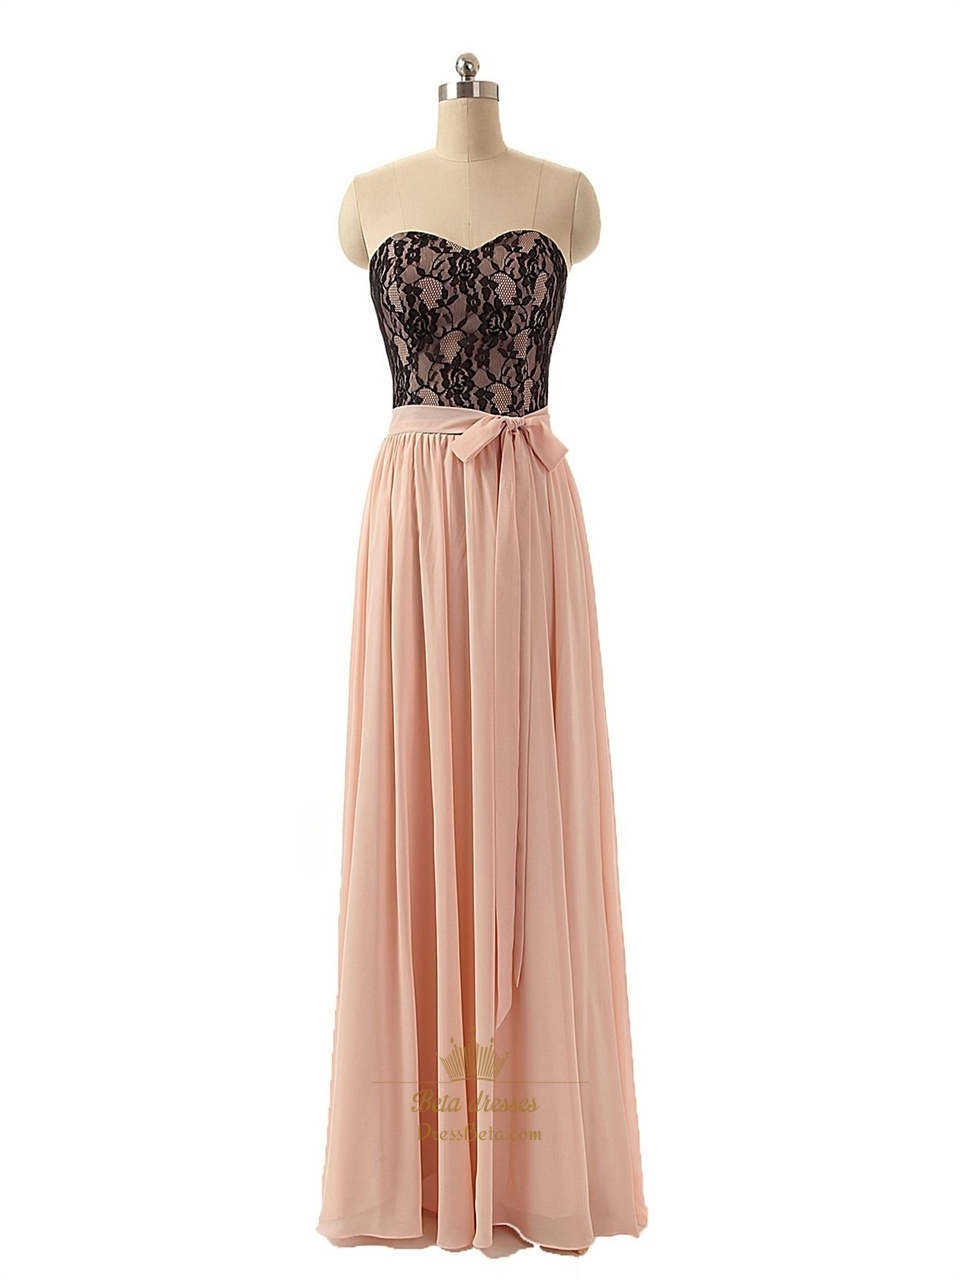 Strapless Black Lace Bodice Peach Chiffon A Line Prom Dress With Bow ...